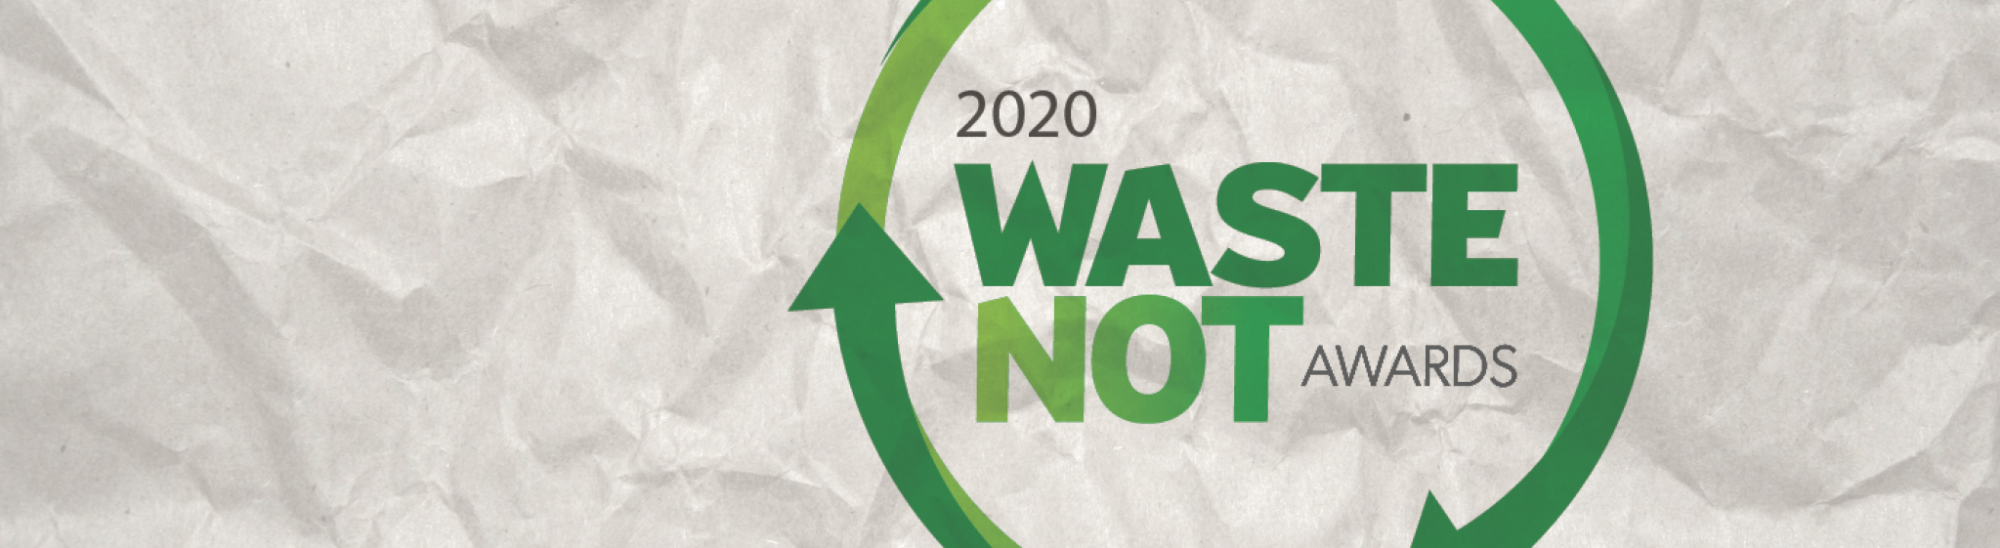 Waste Not Awards City of Launceston 2020.png